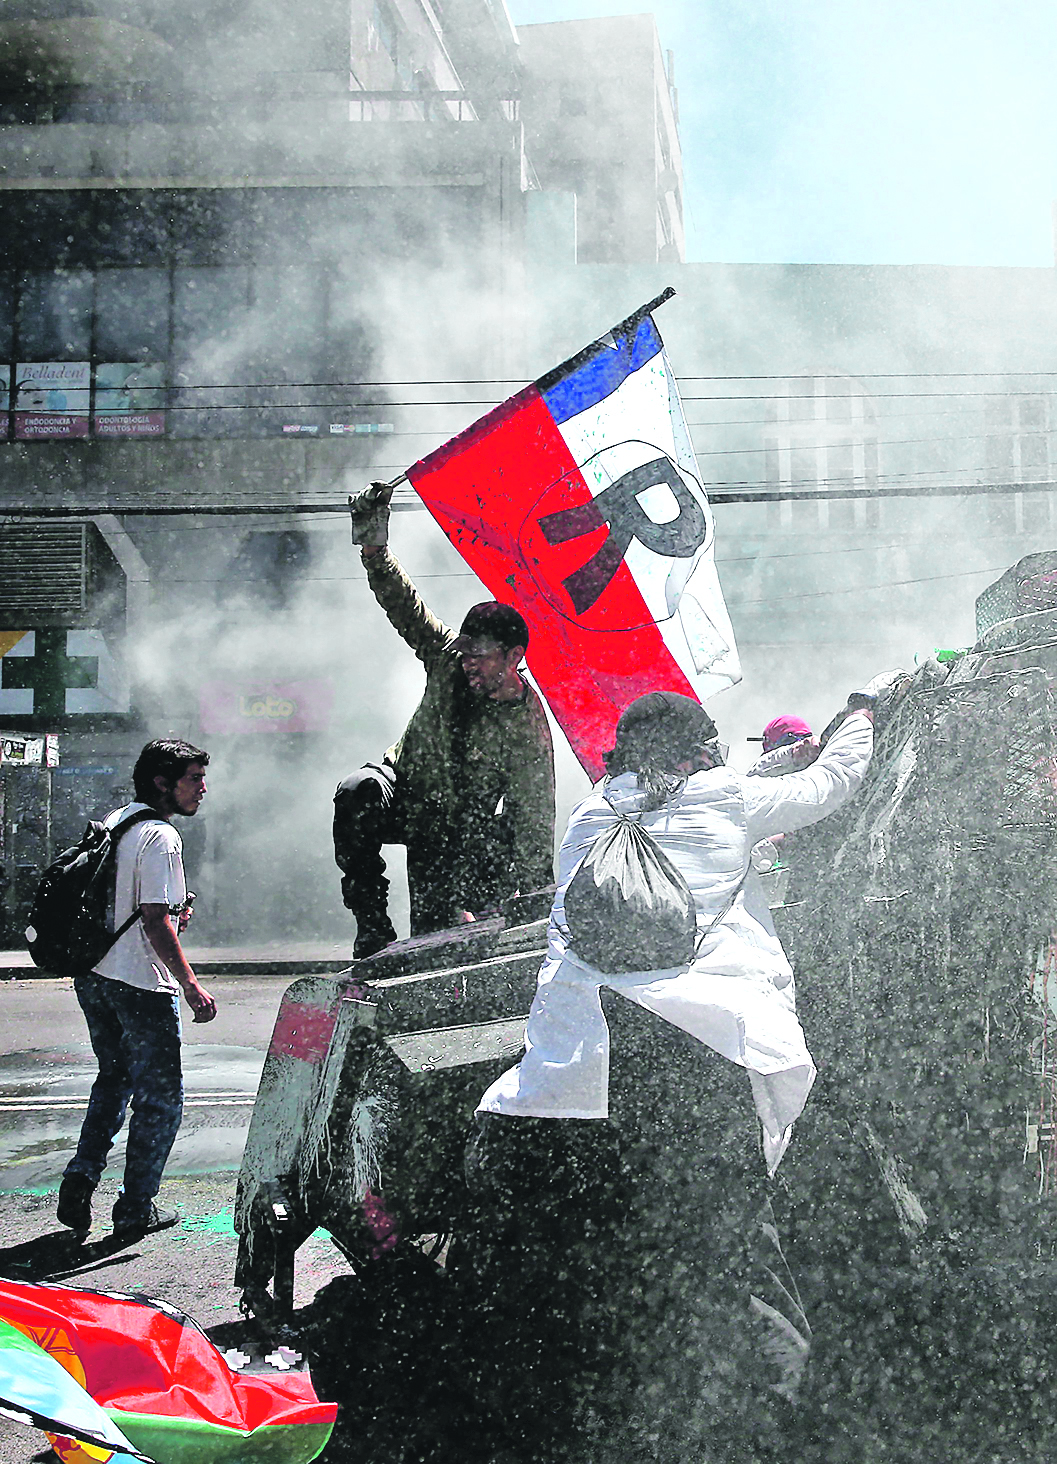 267929-342404-2019-10-30T000000Z_2029044597_RC1BA7088DD0_RTRMADP_3_CHILE-PROTESTS